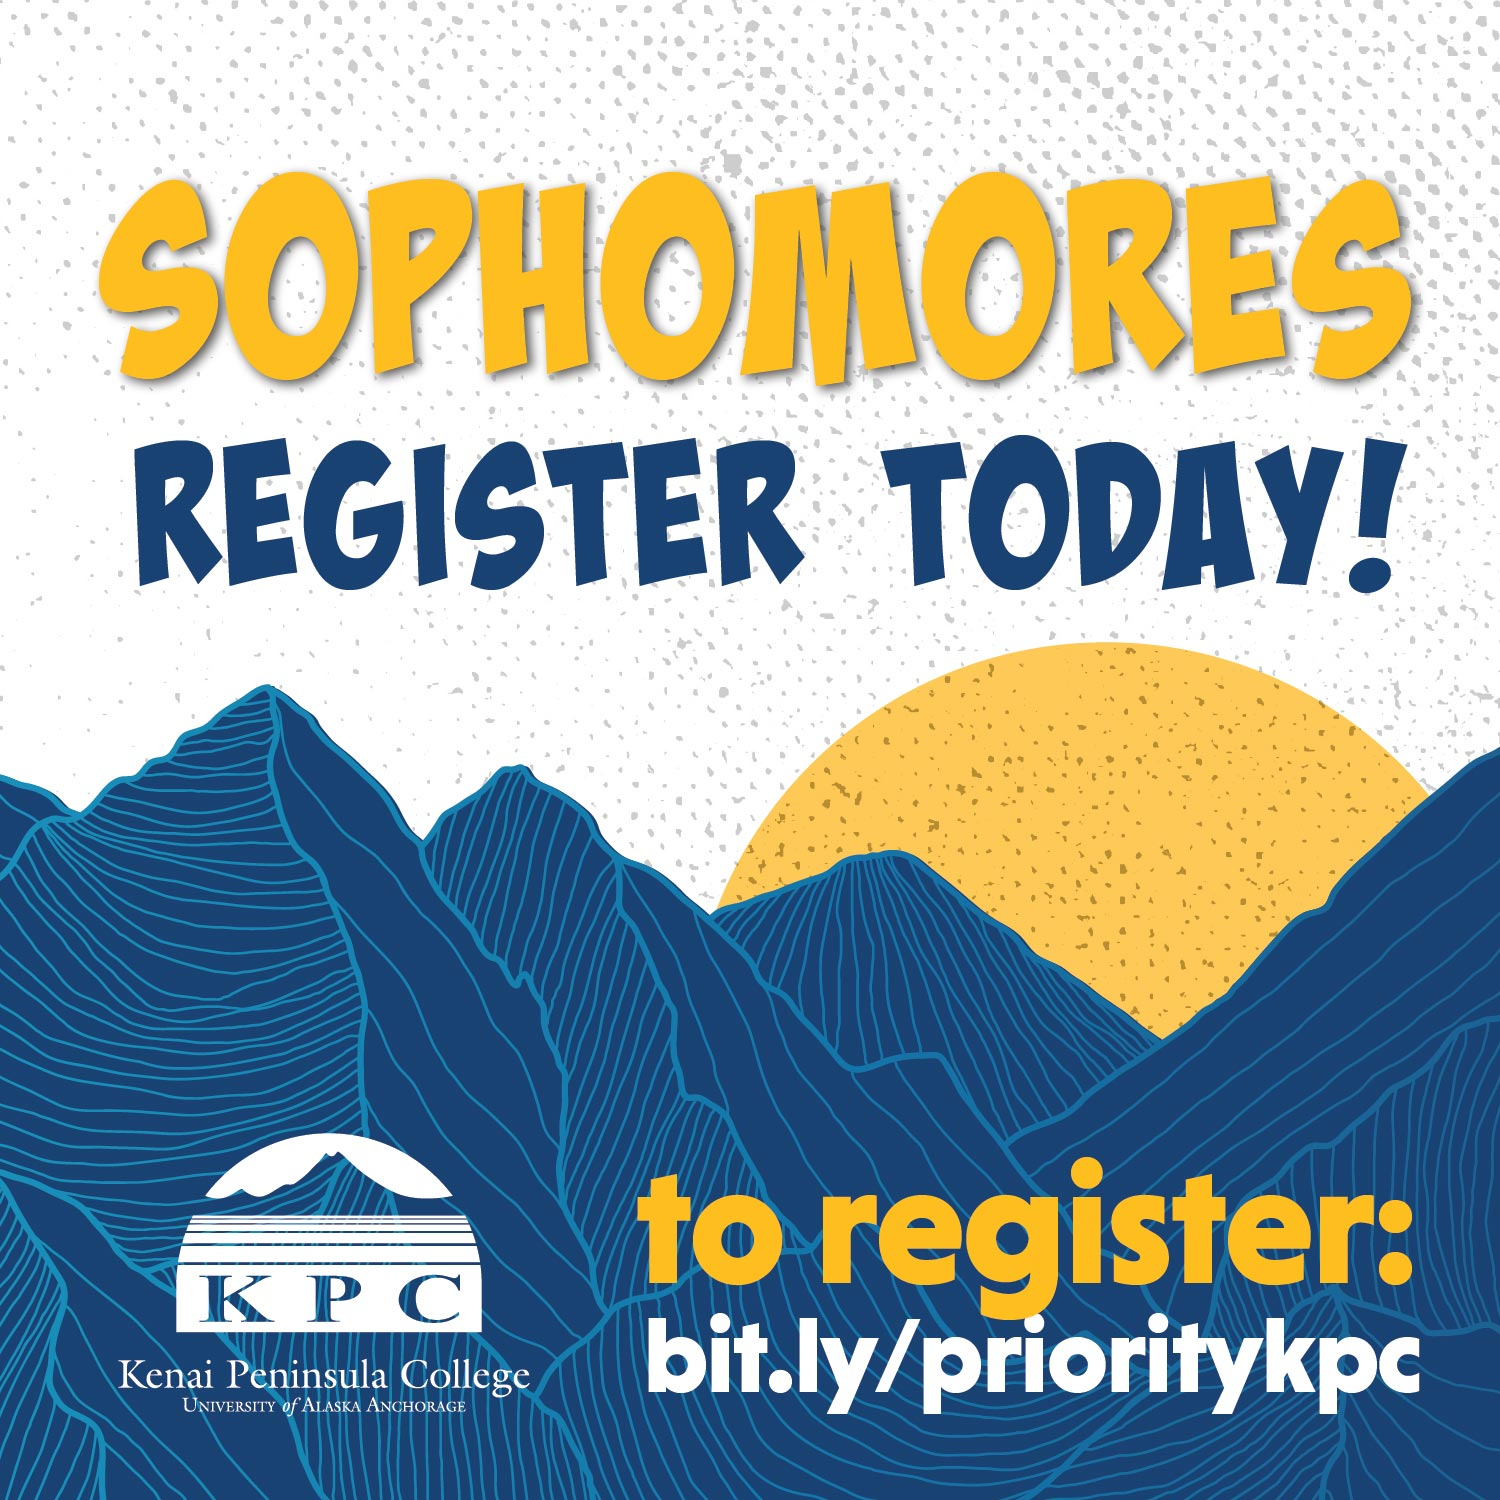 Mountains and the sun with the words sophomores register today to register bit.ly/prioritykpc